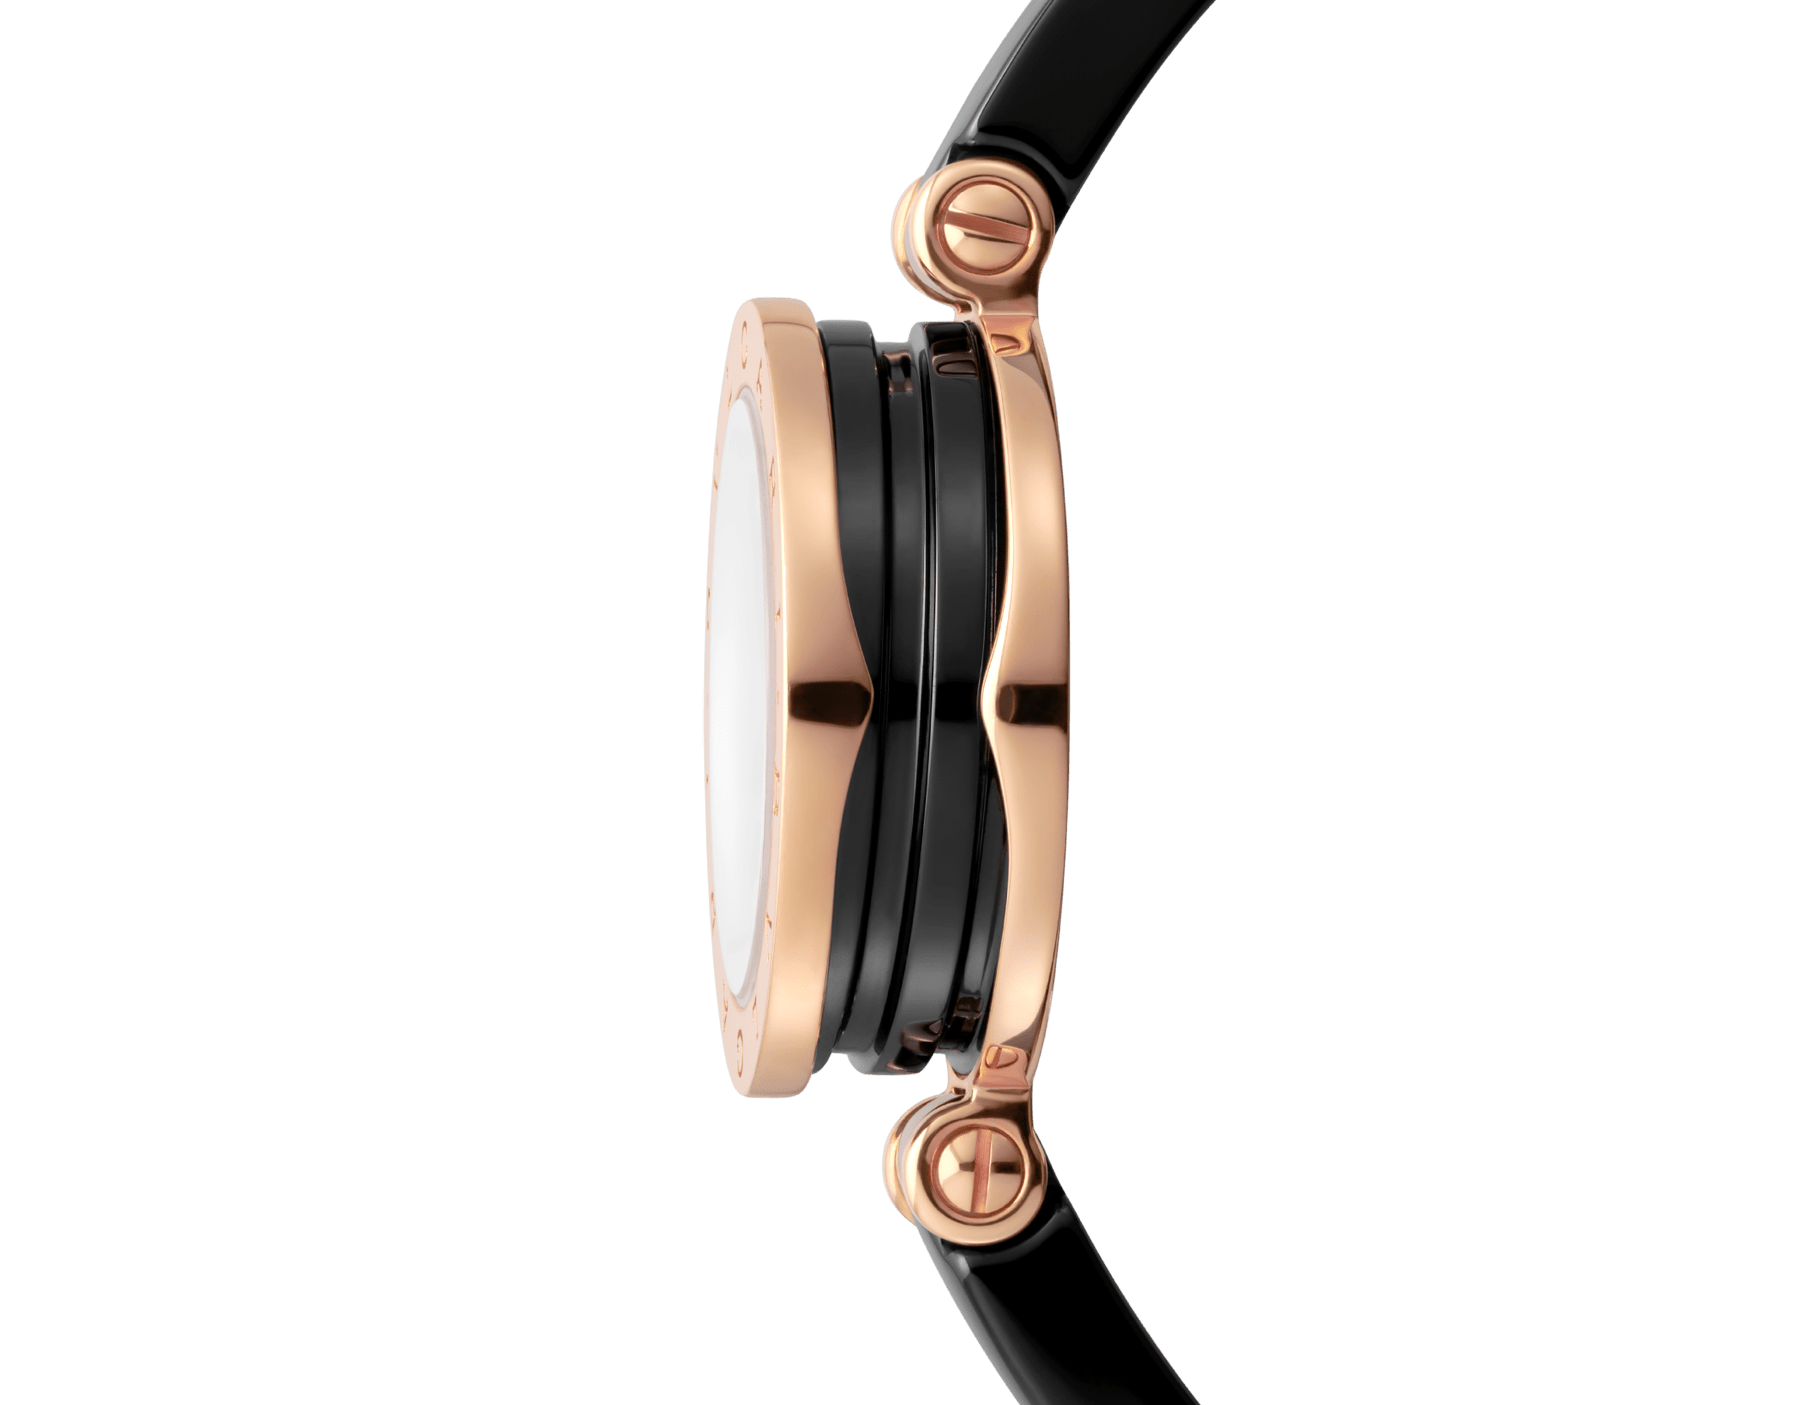 B.zero1 watch with 18 kt rose gold and black ceramic case, black lacquered dial set with diamond indexes, black ceramic bangle and 18 kt rose gold clasp. B01watch-black-black-dial2 image 3